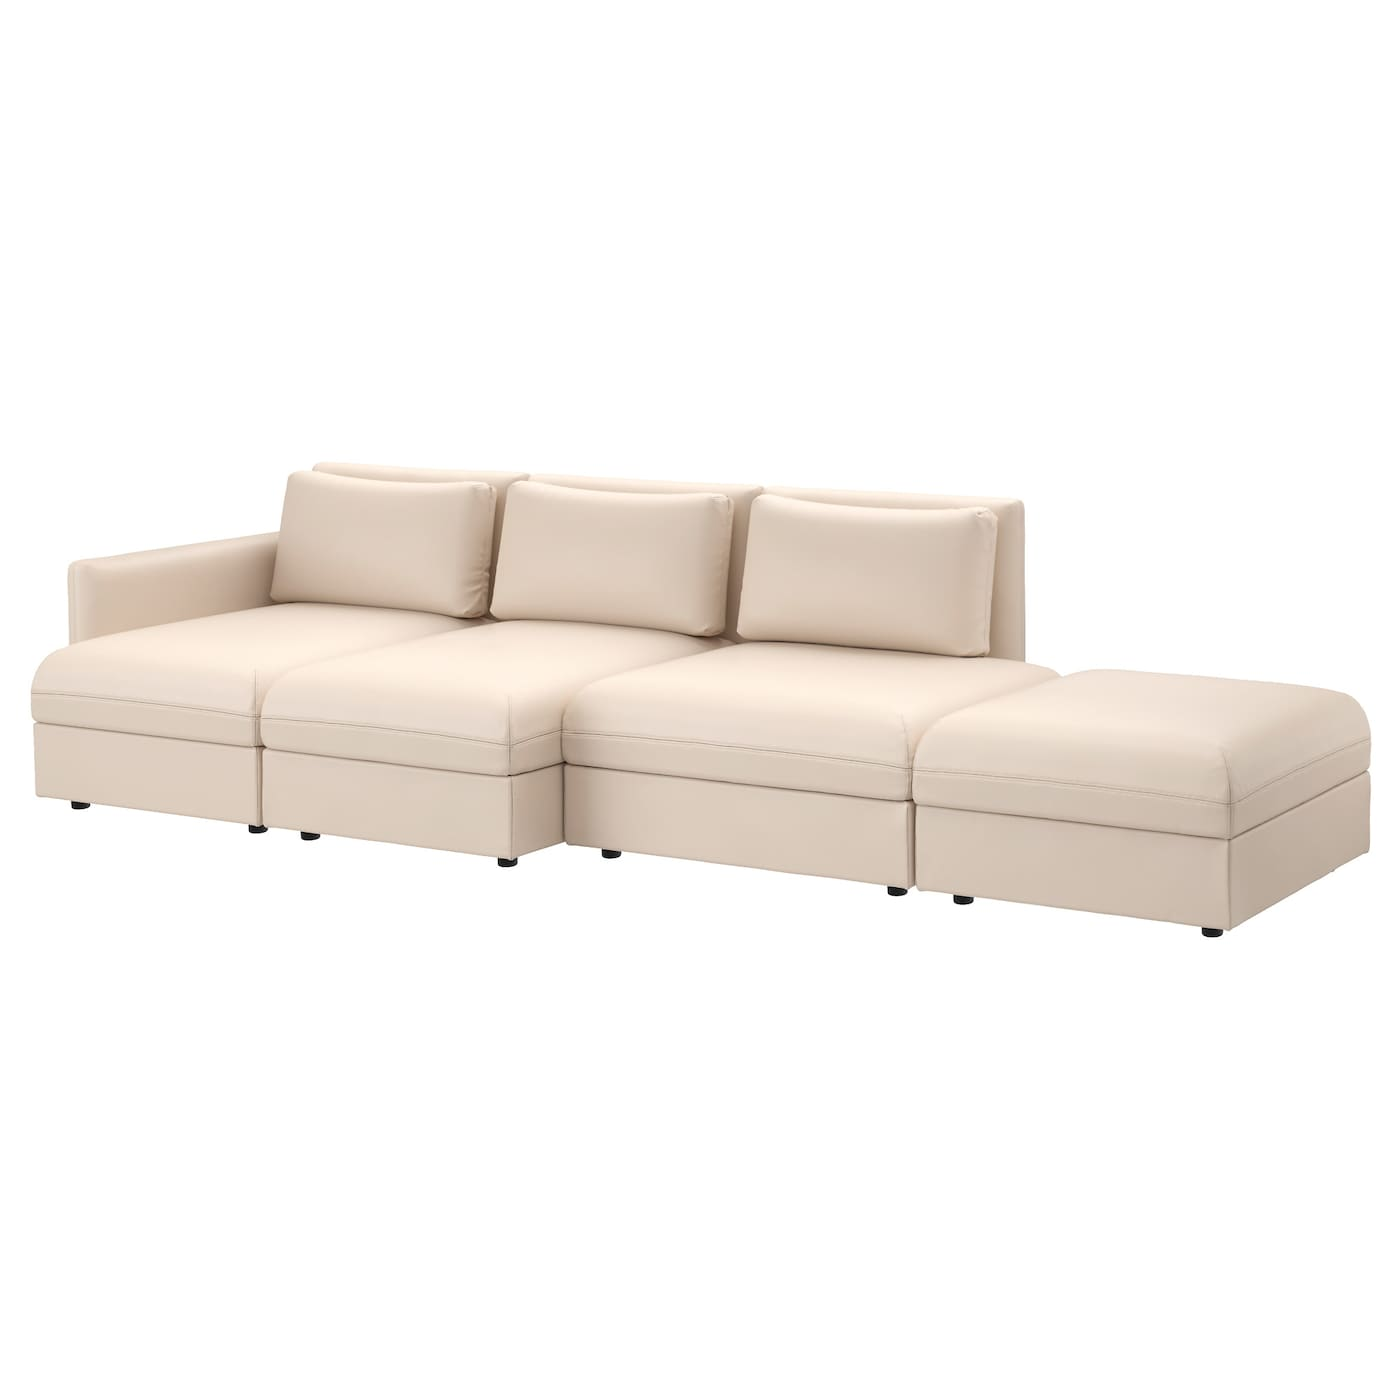 Modular sectional sofas ikea ireland for Sofa japanischer stil